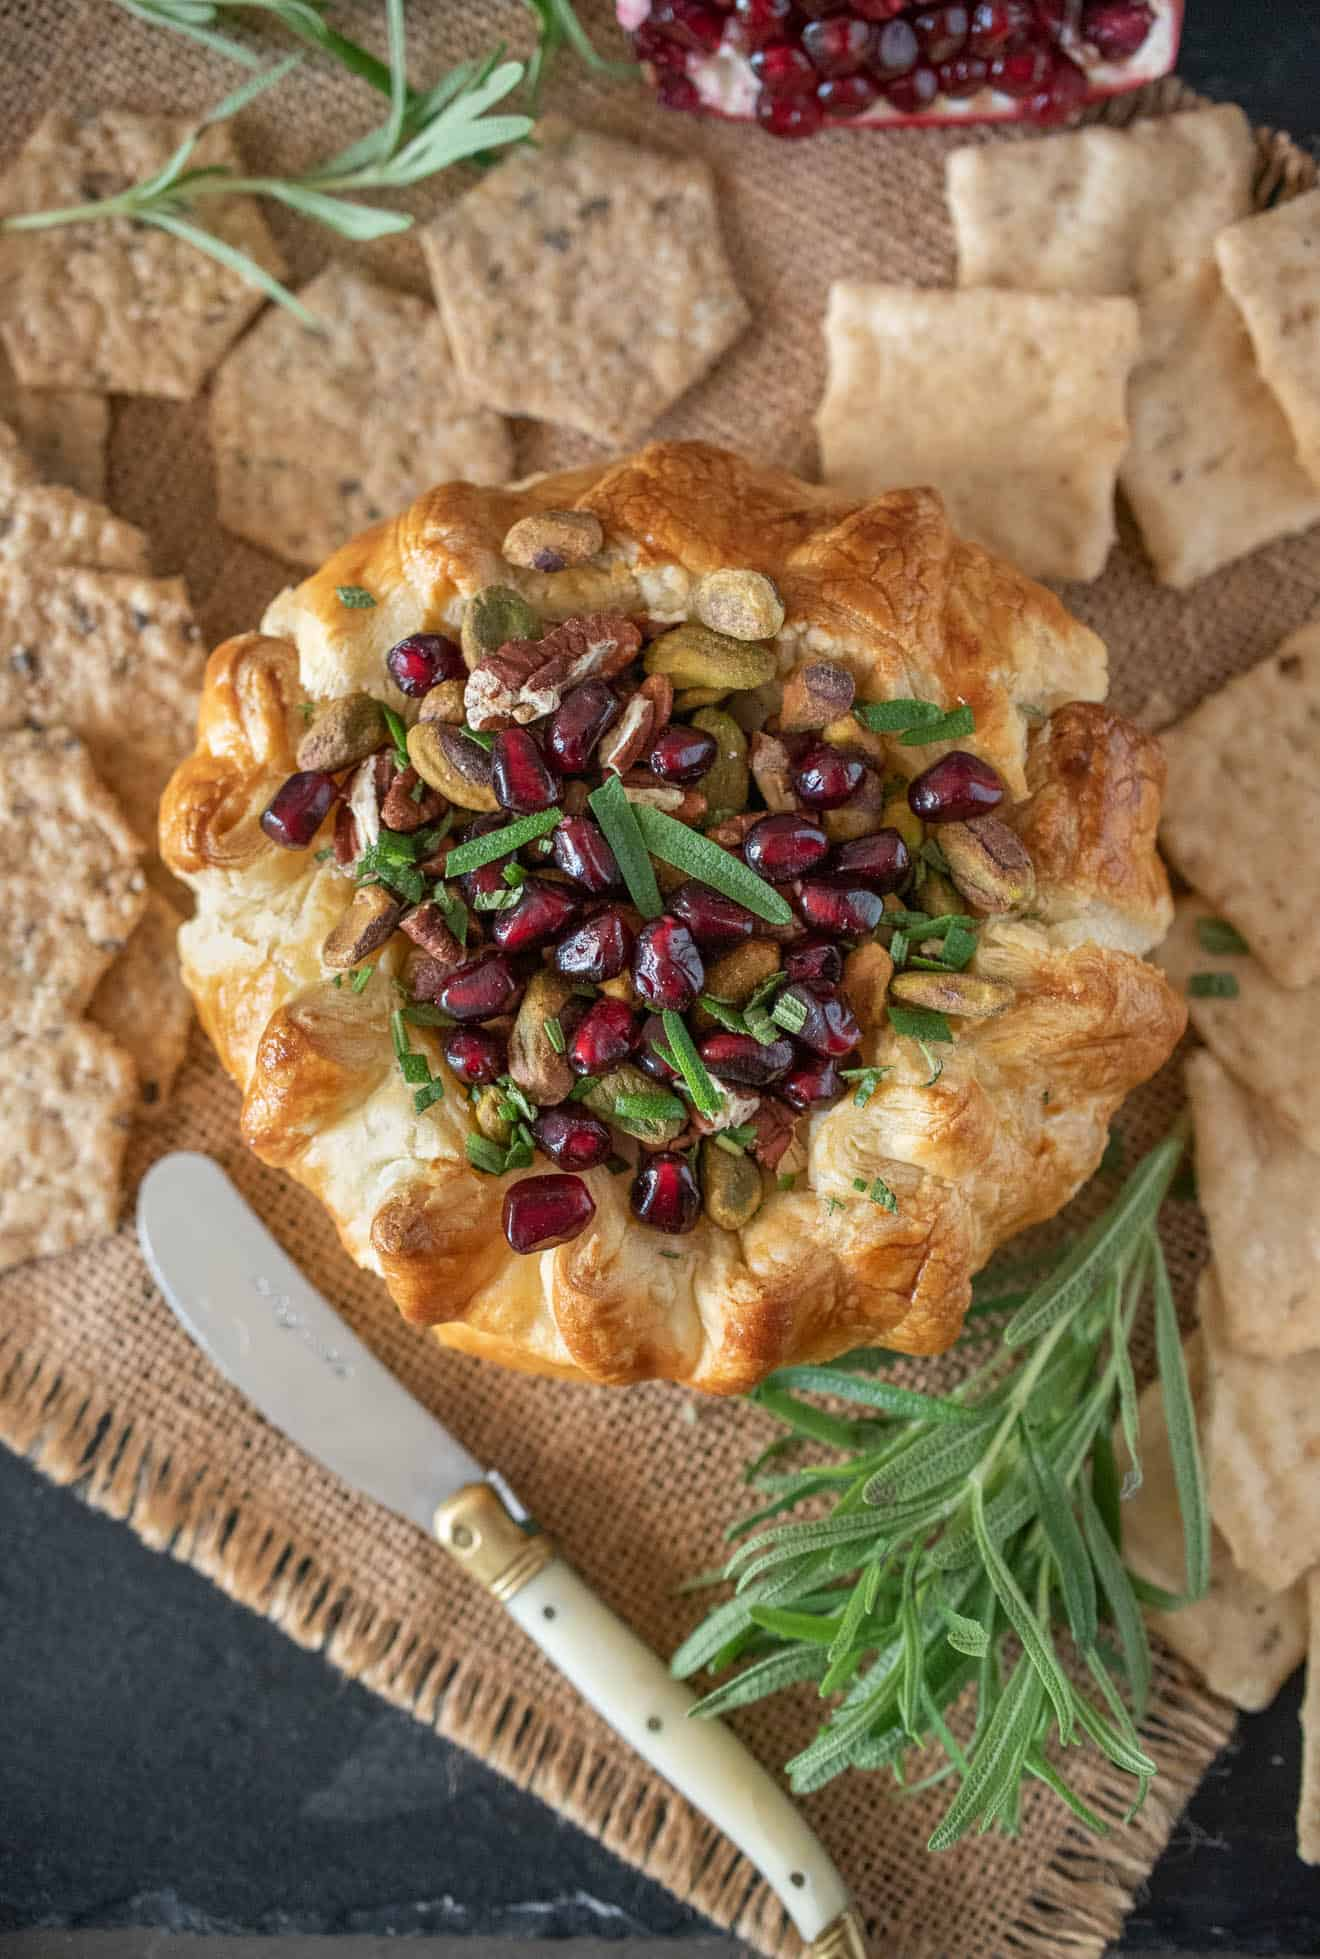 Baked Brie with Pistachios, Pomegranate and Rosemary wrapped in puff pastry surrounded with crackers